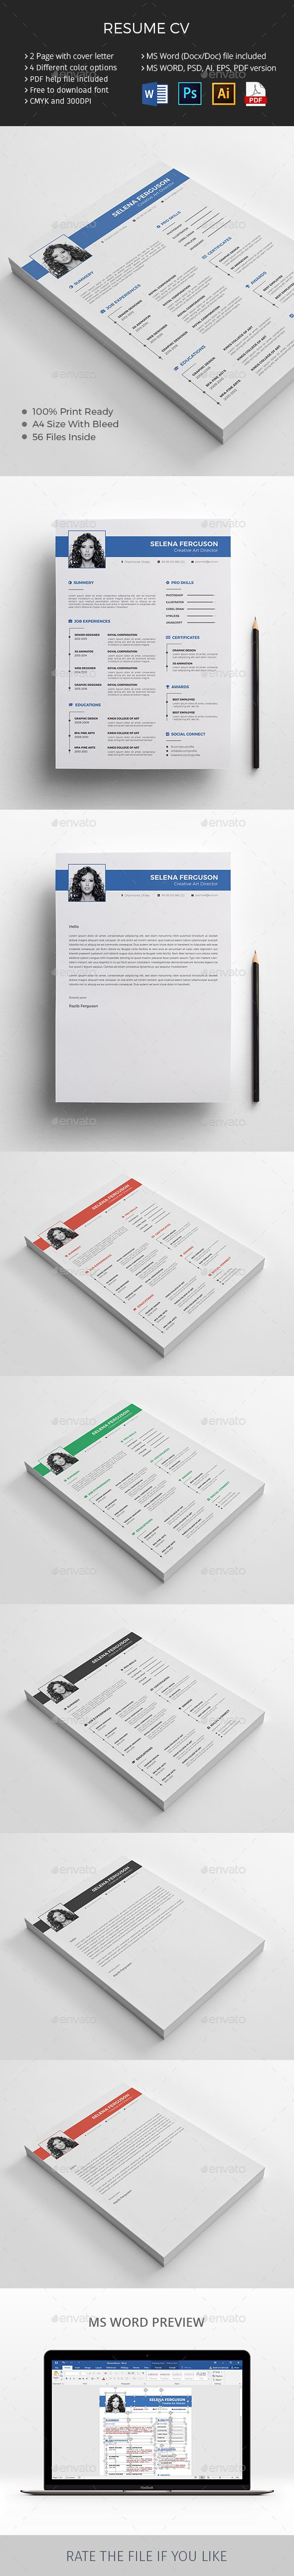 business infographic resume cv resumes stationery download here